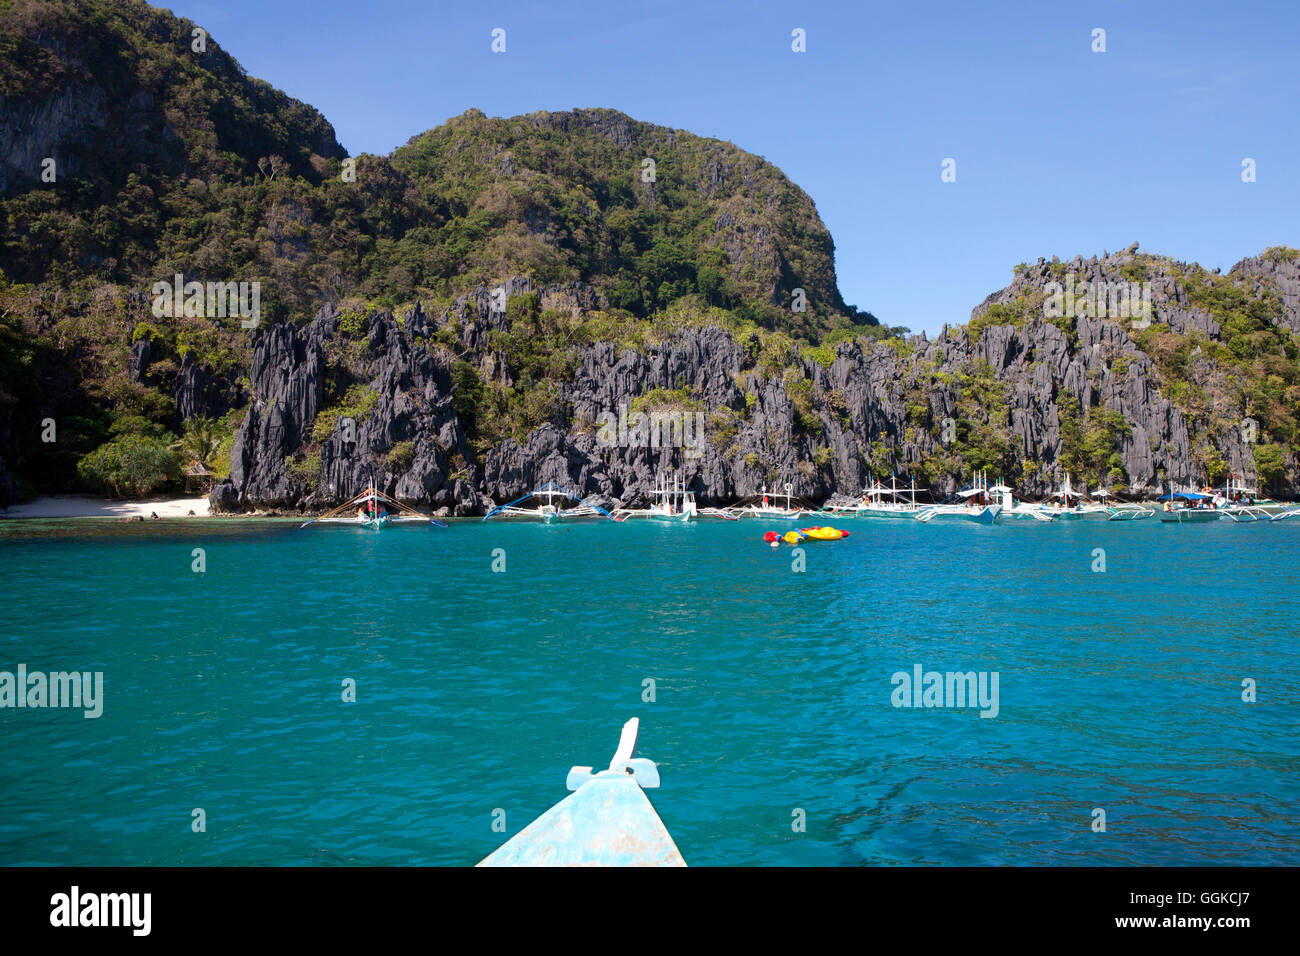 Excursion boats in the Archipelago Bacuit near El Nido, Palawan Island, South China Sea, Philippines, Asia - Stock Image